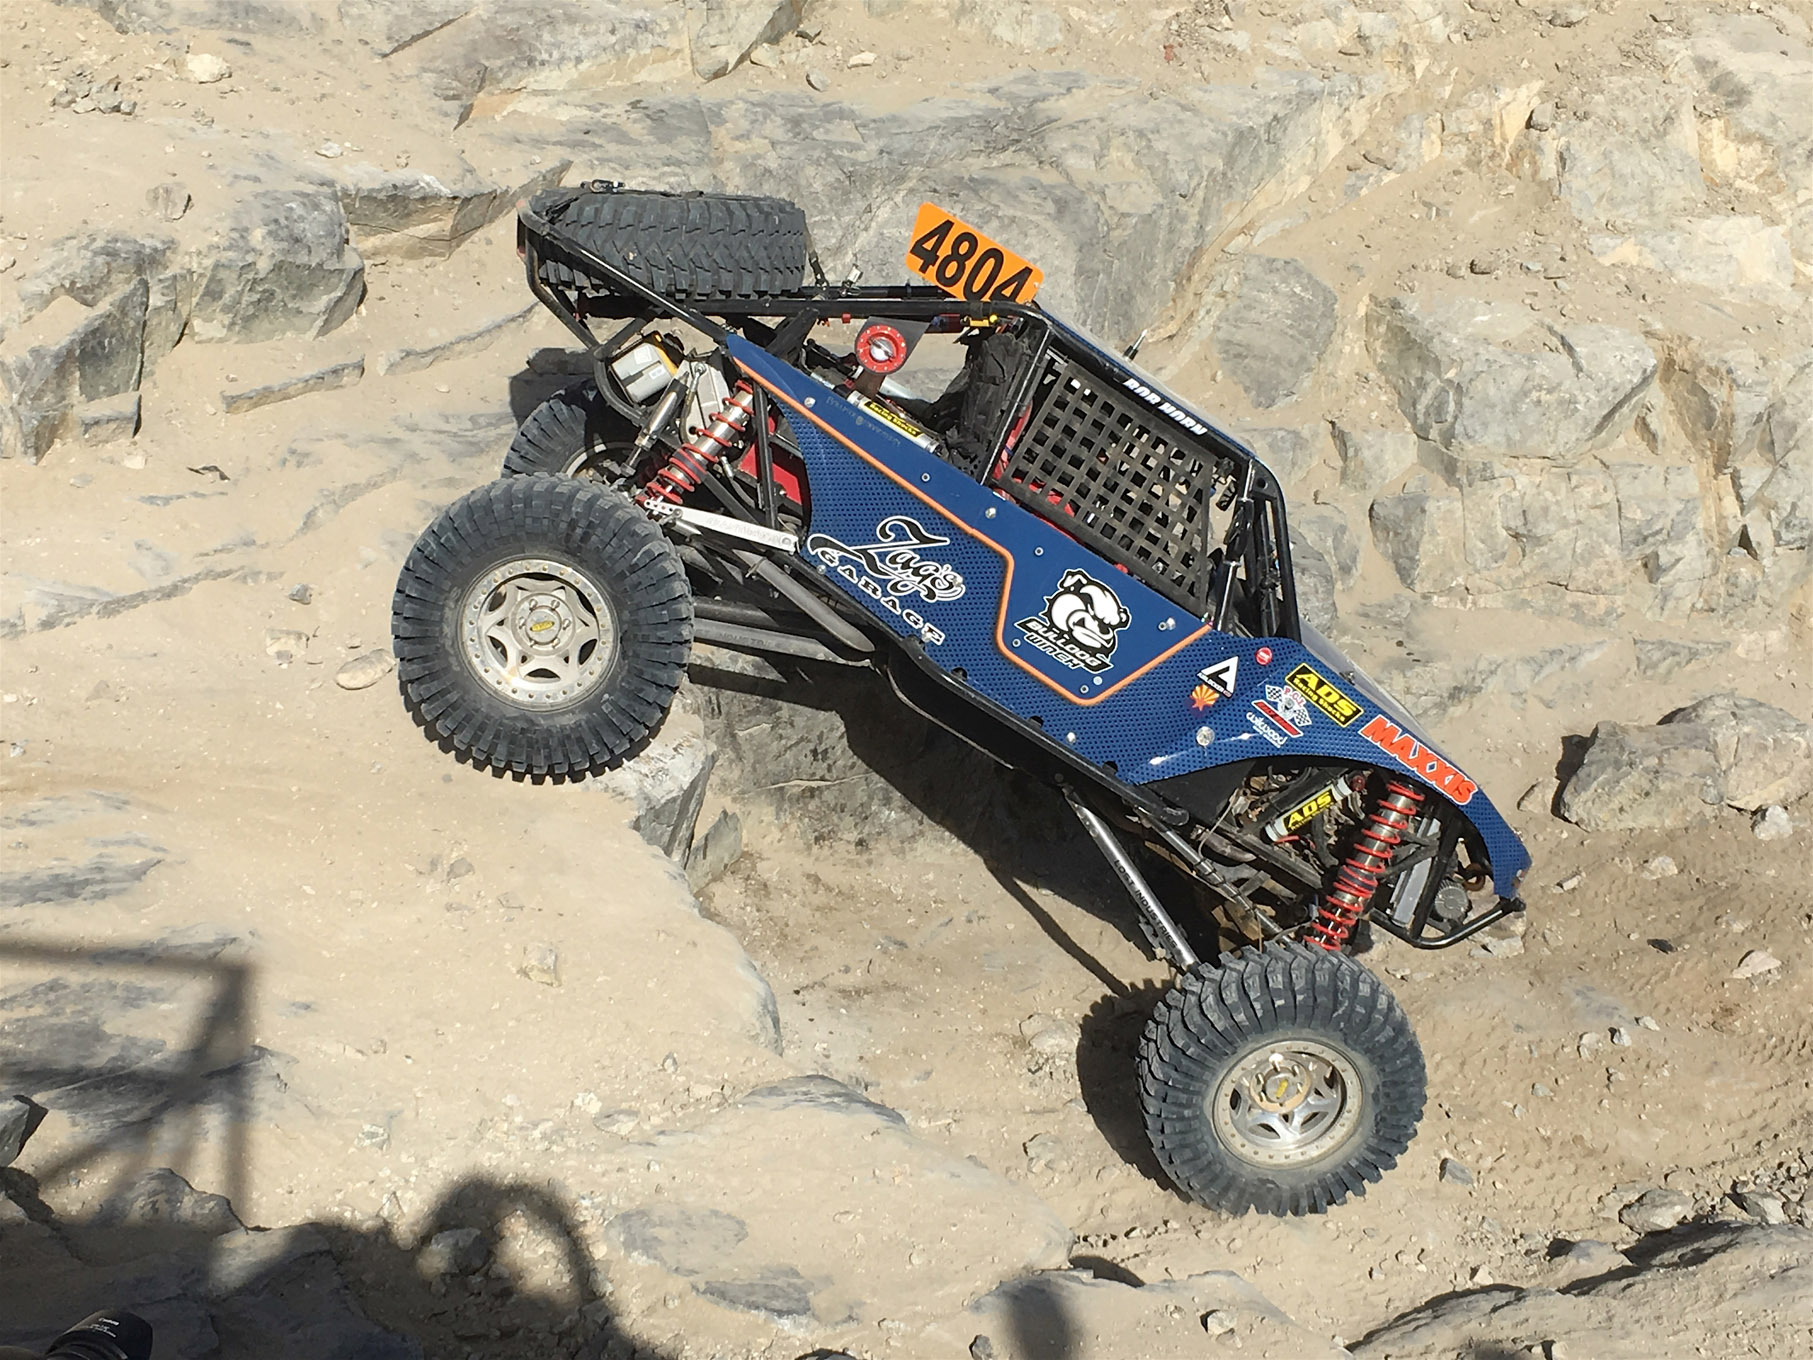 214 2017 king of the hammers koh racecar action on course stuart bourdon photographer